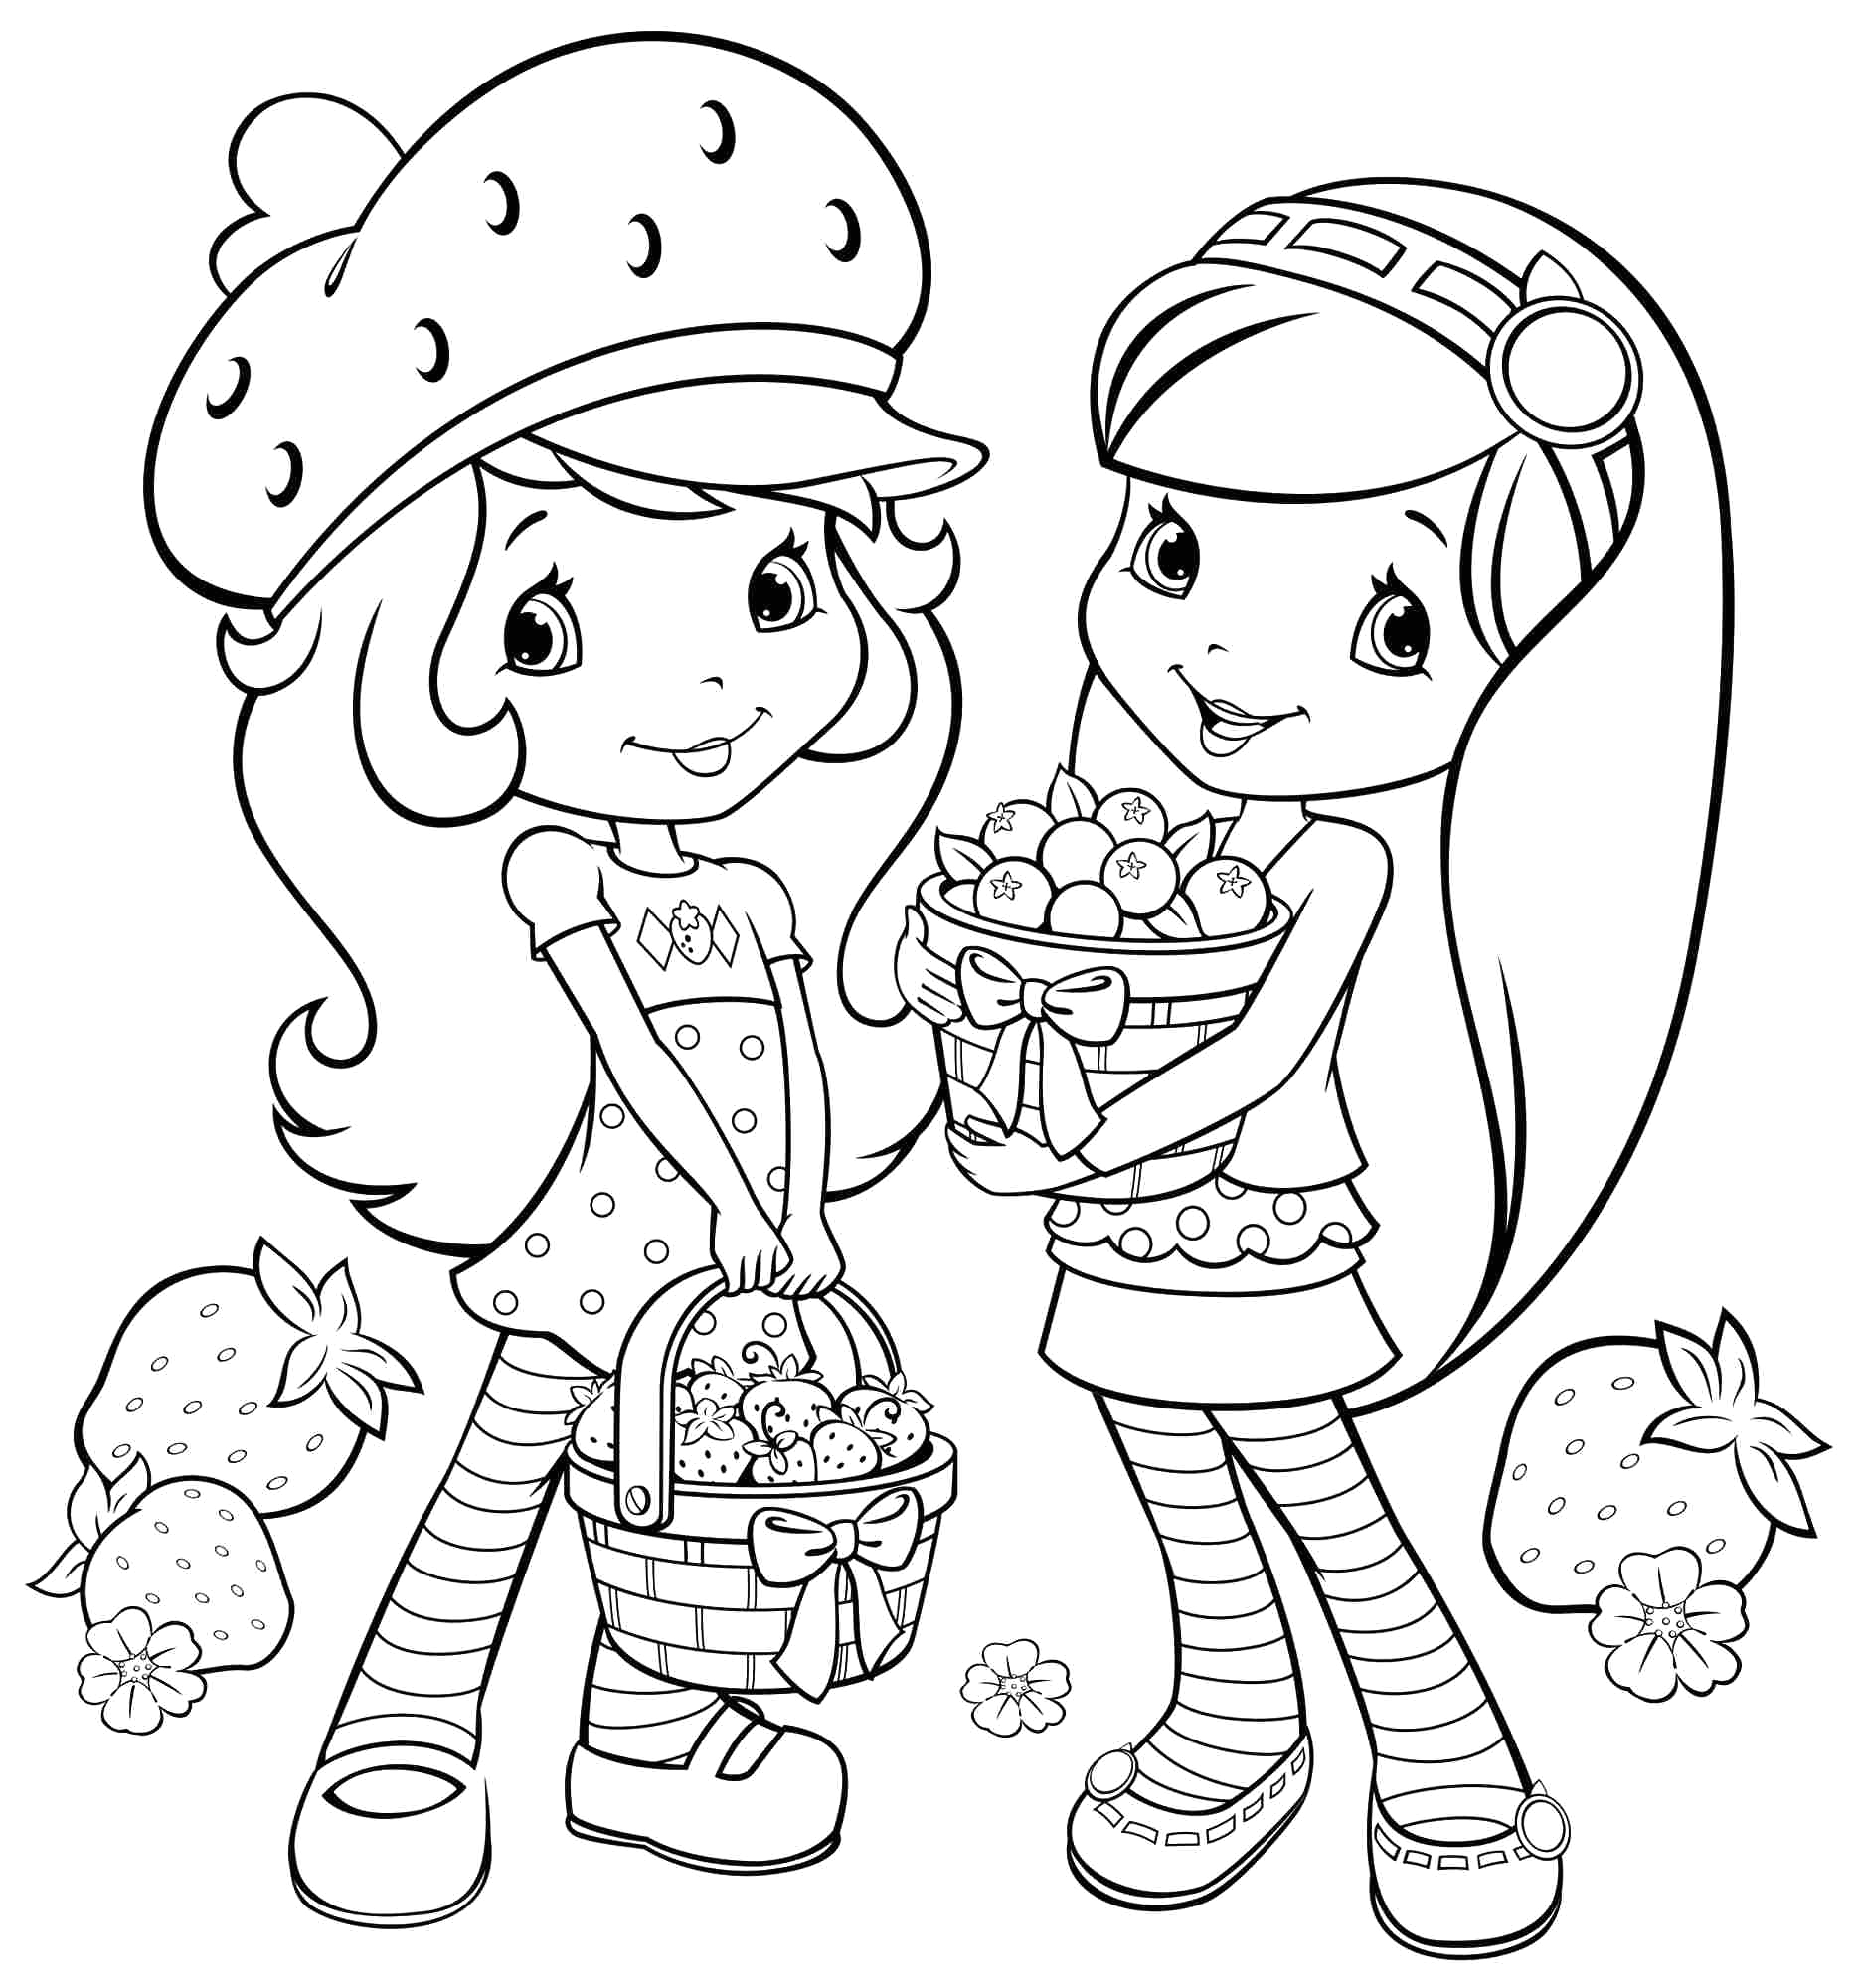 Coloring Pages Of Strawberry Shortcake and Friends Strawberry Shortcake Drawing at Getdrawings